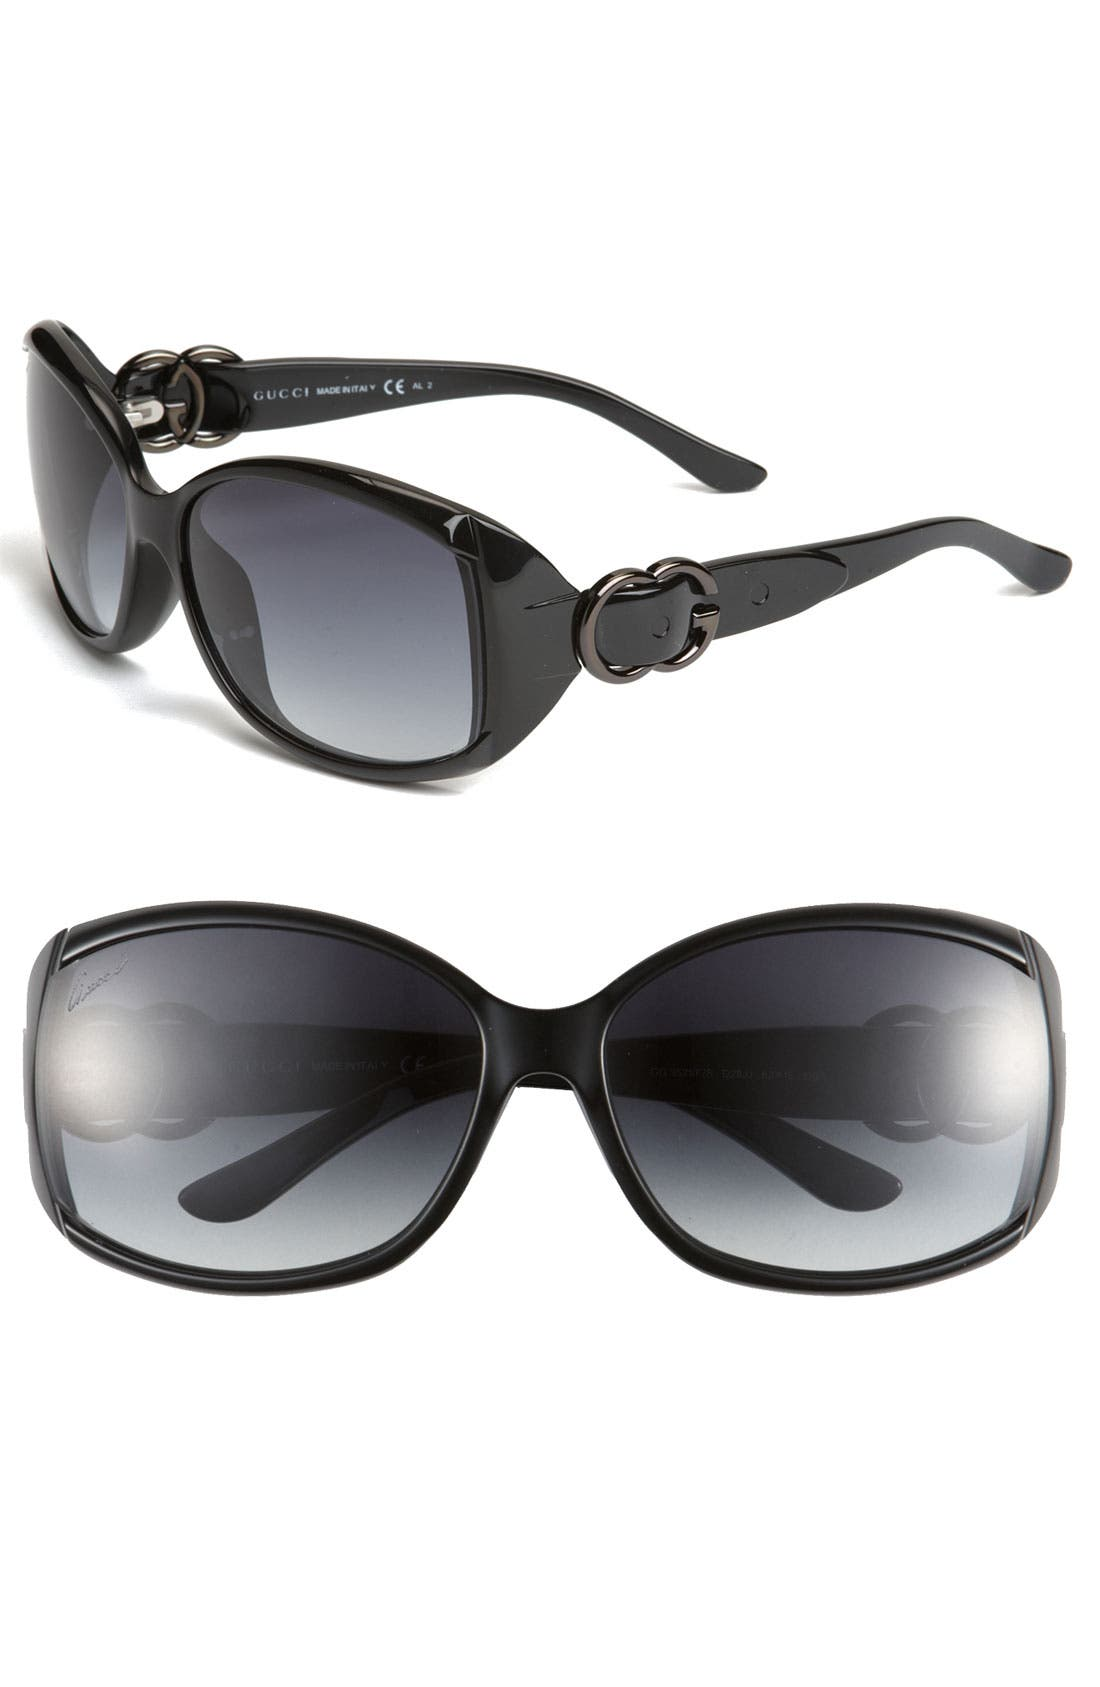 Main Image - Gucci 58mm Oversized Sunglasses